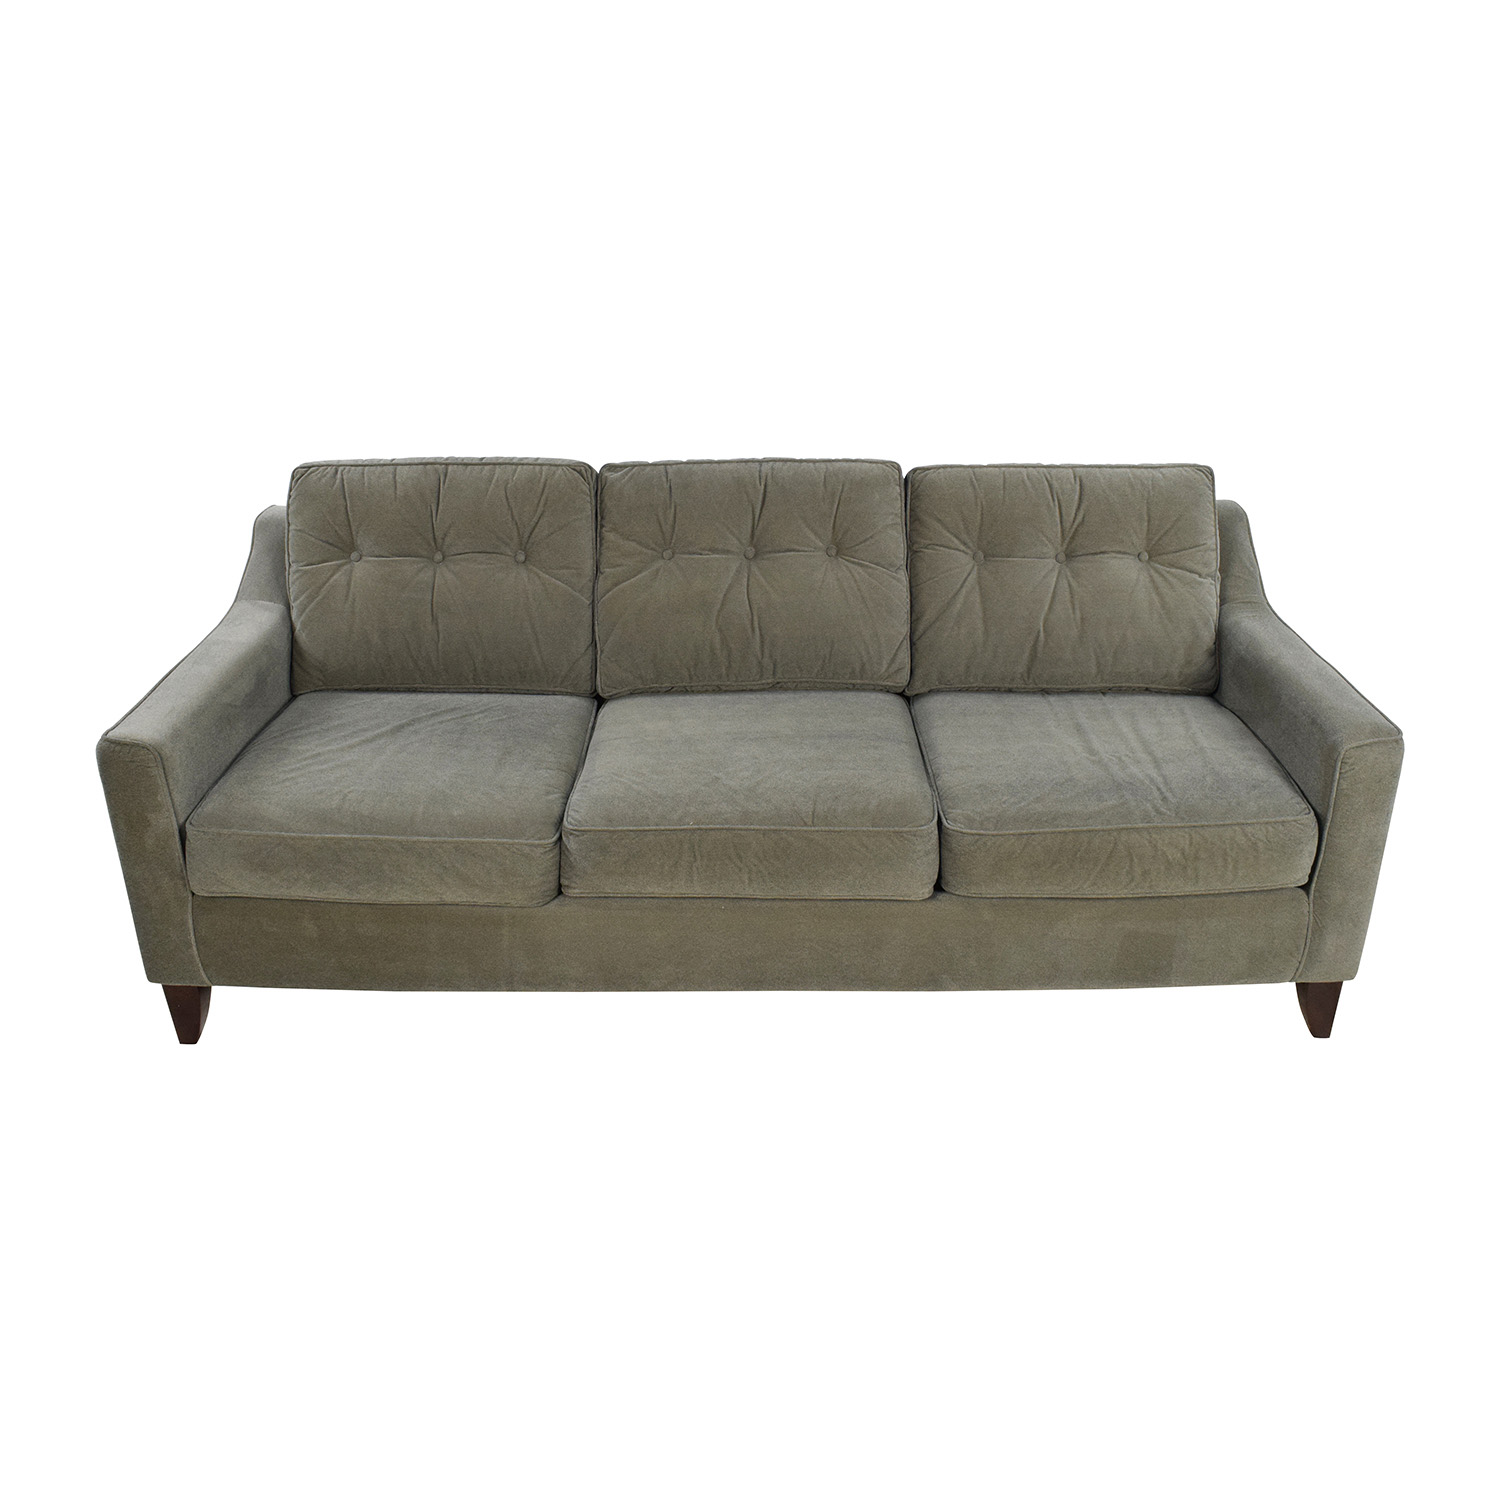 Stylecraft Designs Alexis Sofa in Grey sale